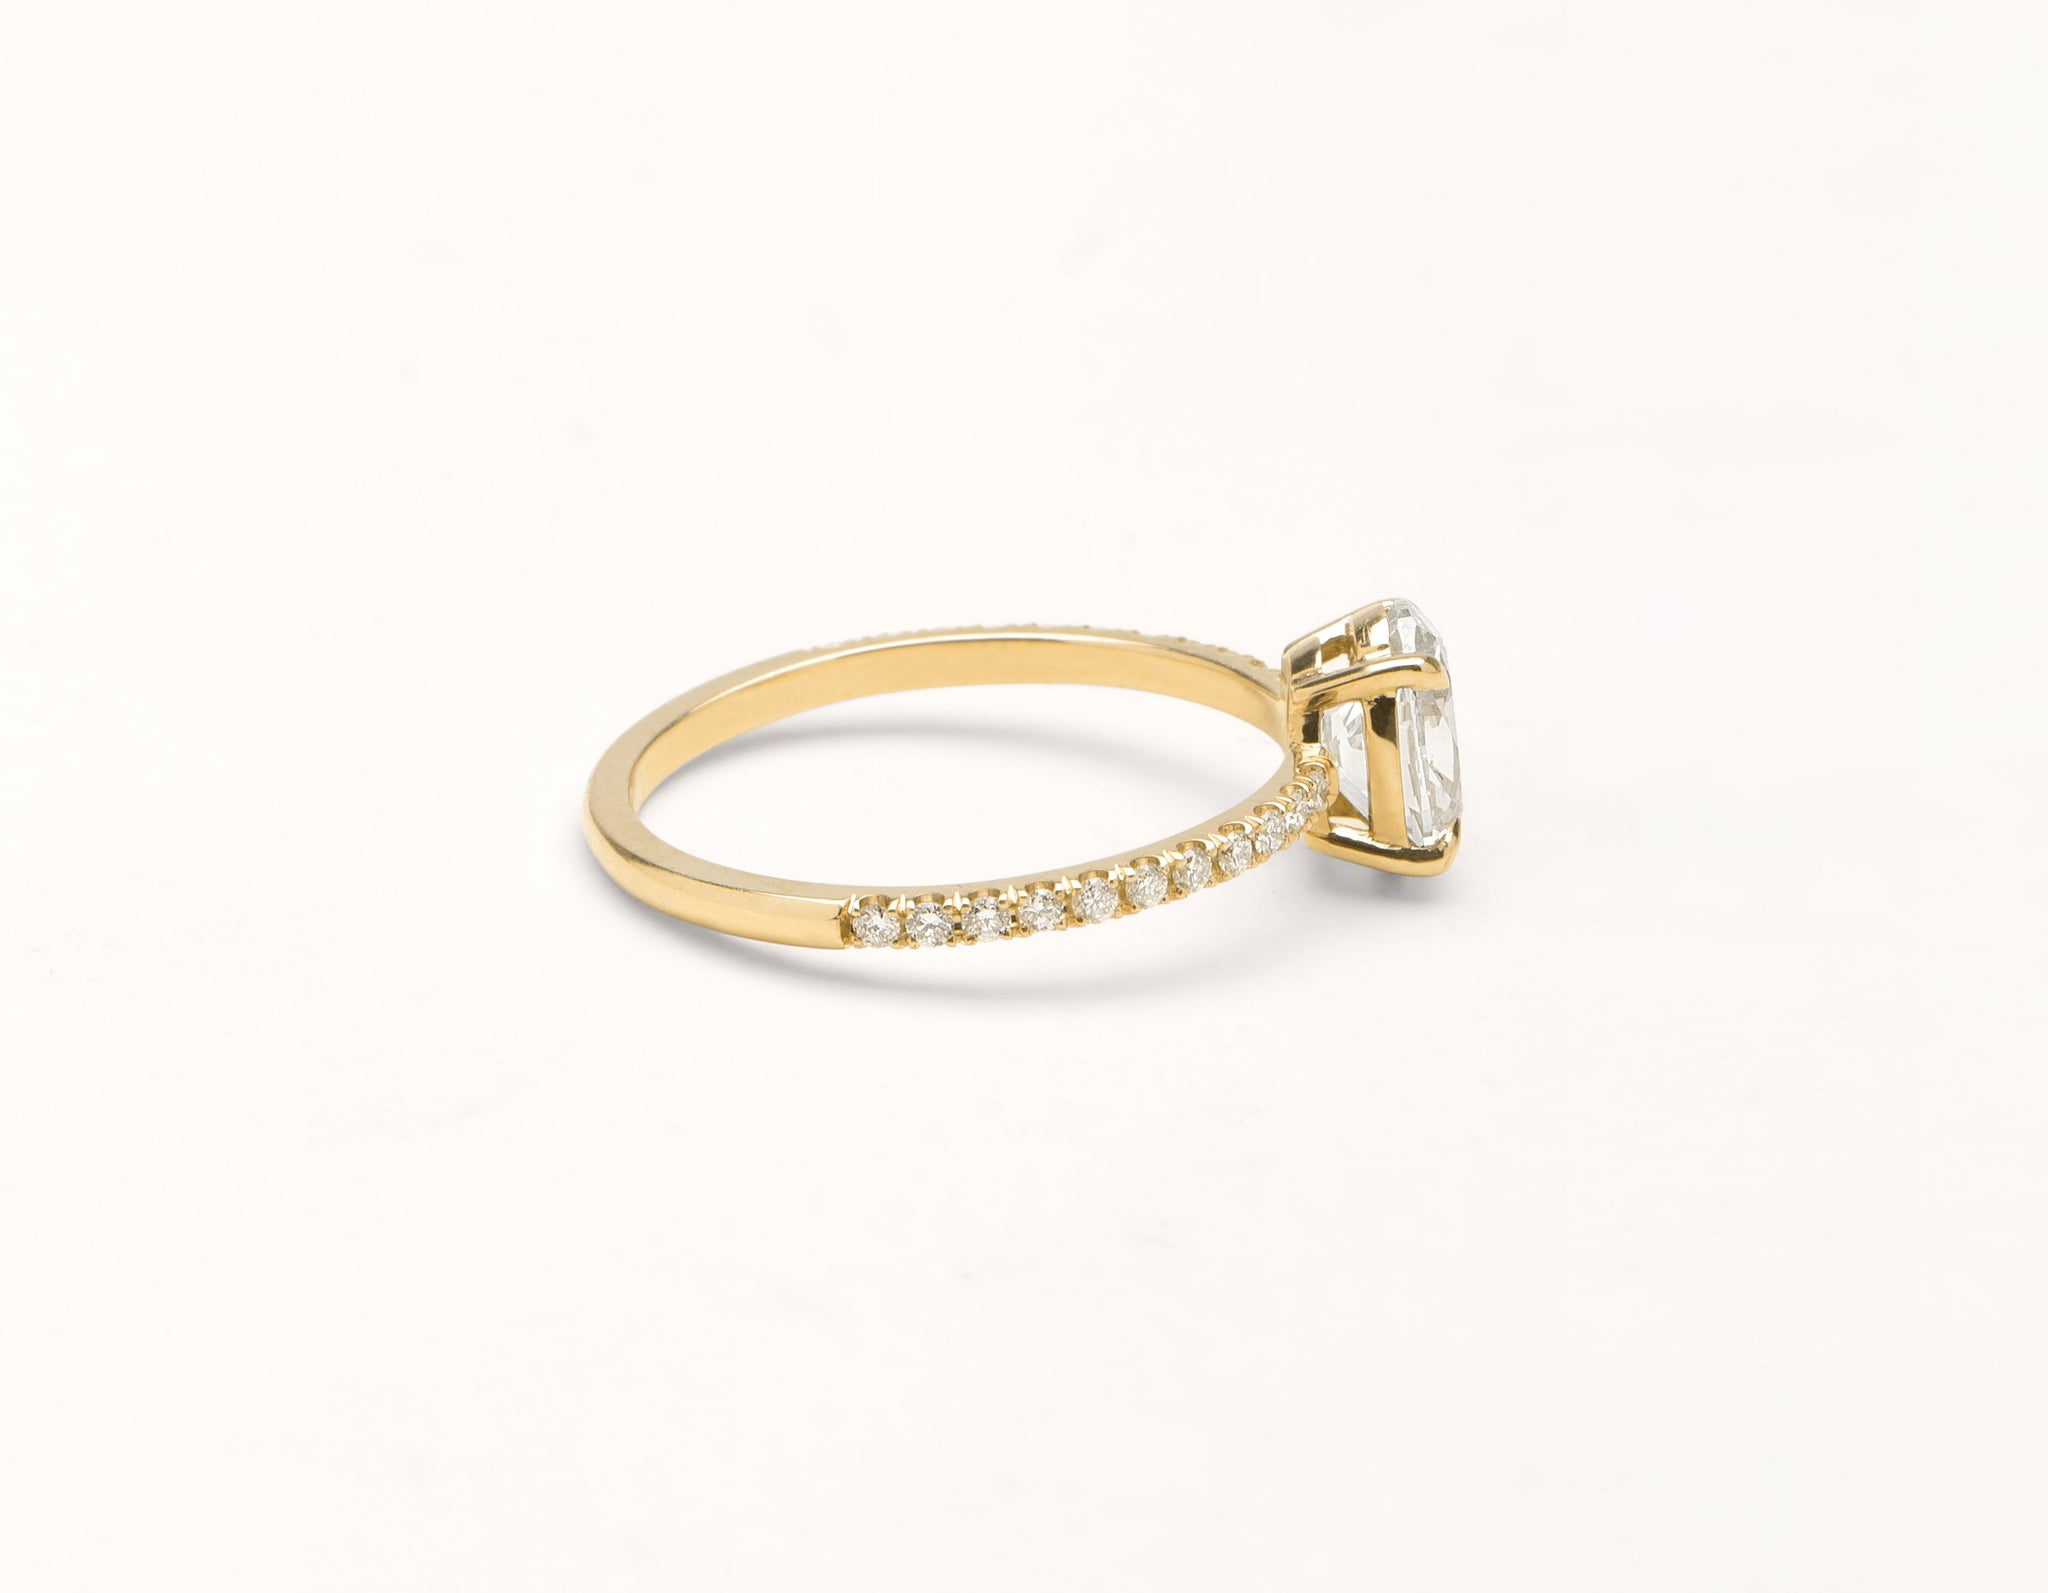 Simple modern 18k solid yellow gold 1 carat Oval diamond pave engagement ring Vrai & Oro